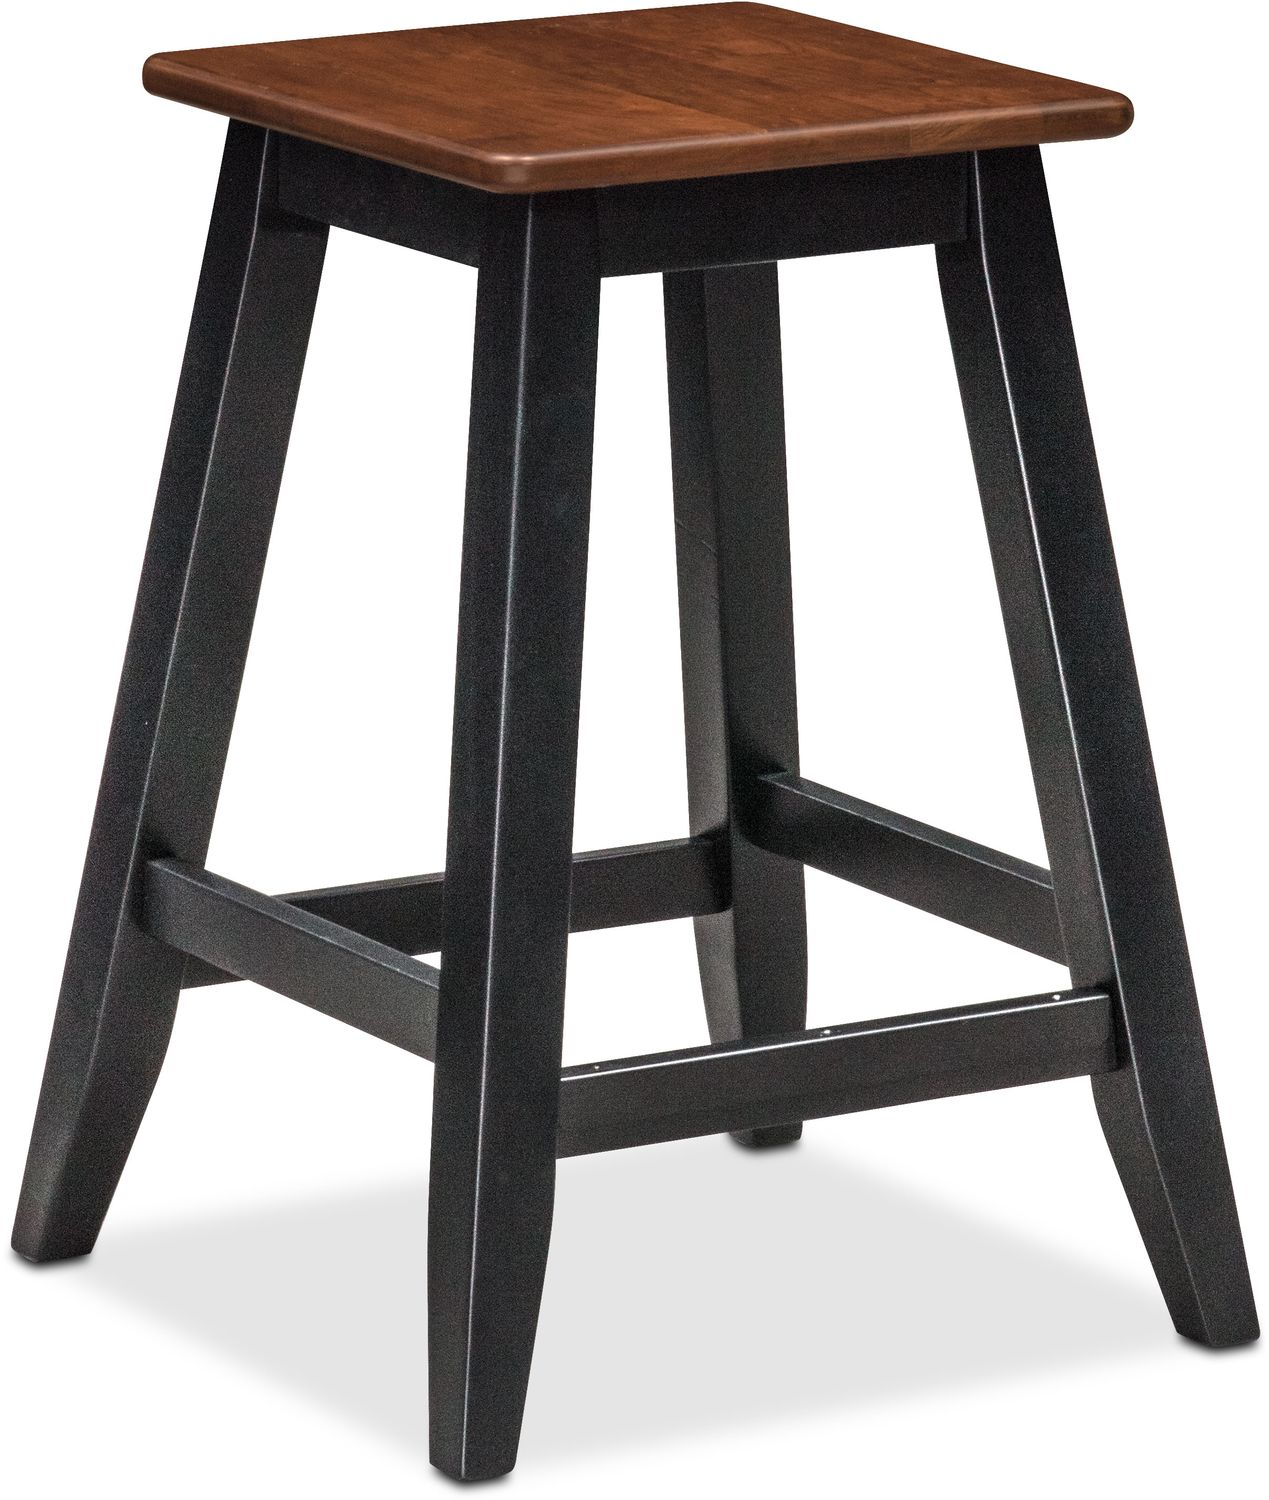 Dining Room Furniture - Nantucket Counter-Height Stool - Black and Cherry